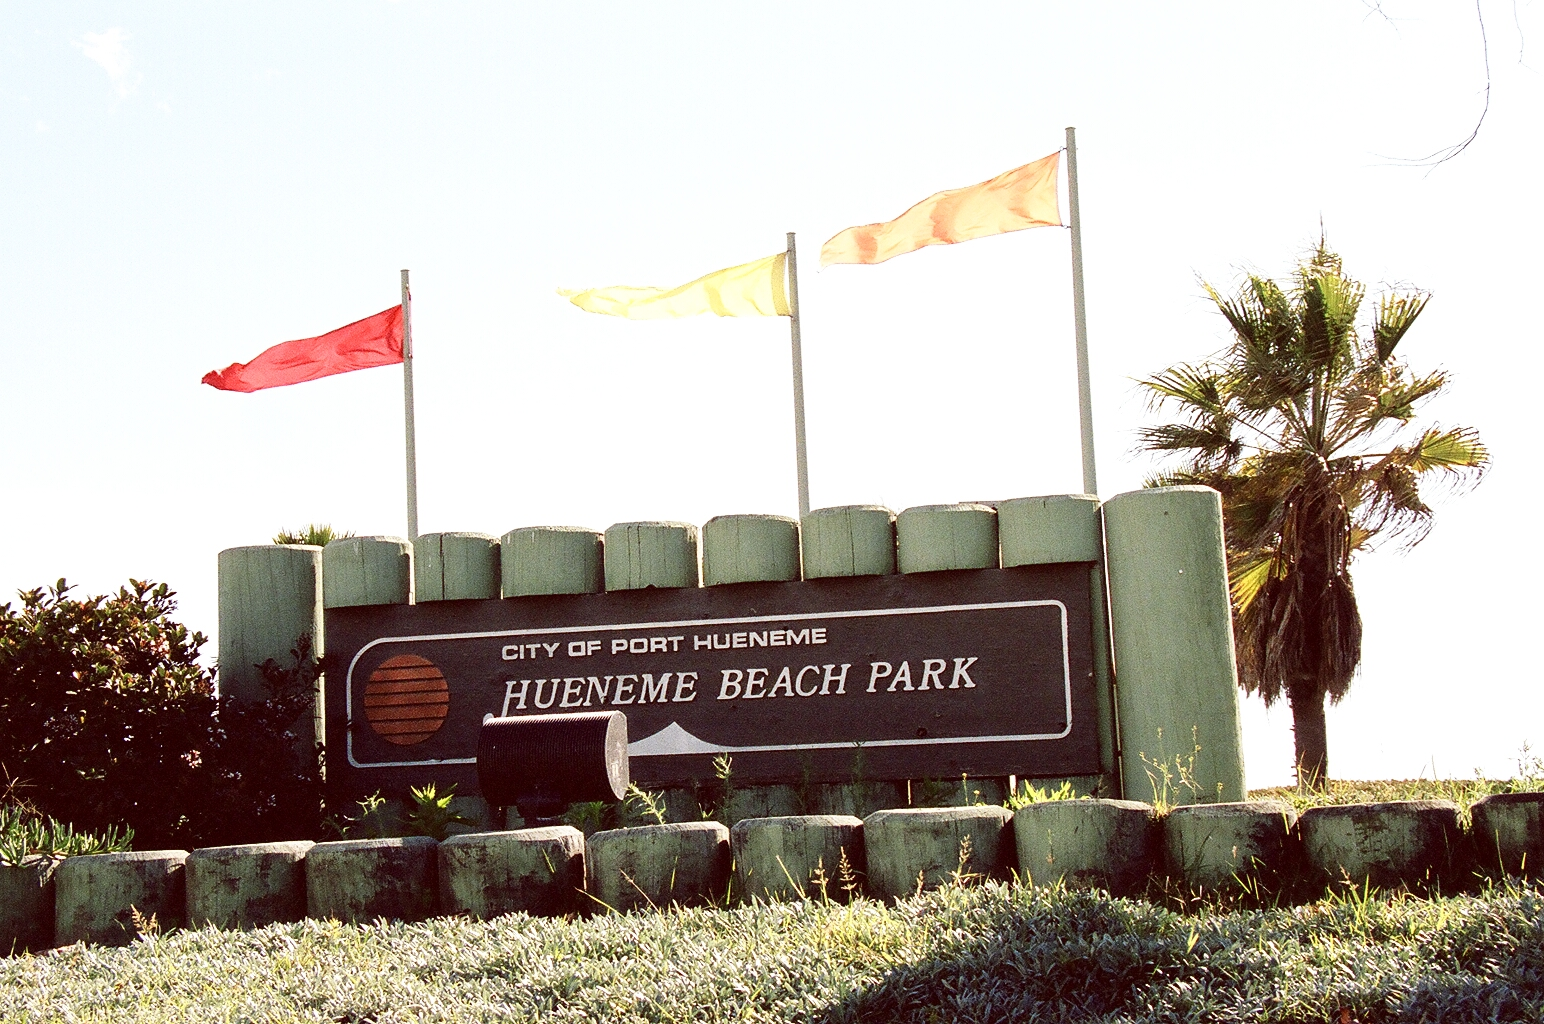 About Hueneme Beach Park